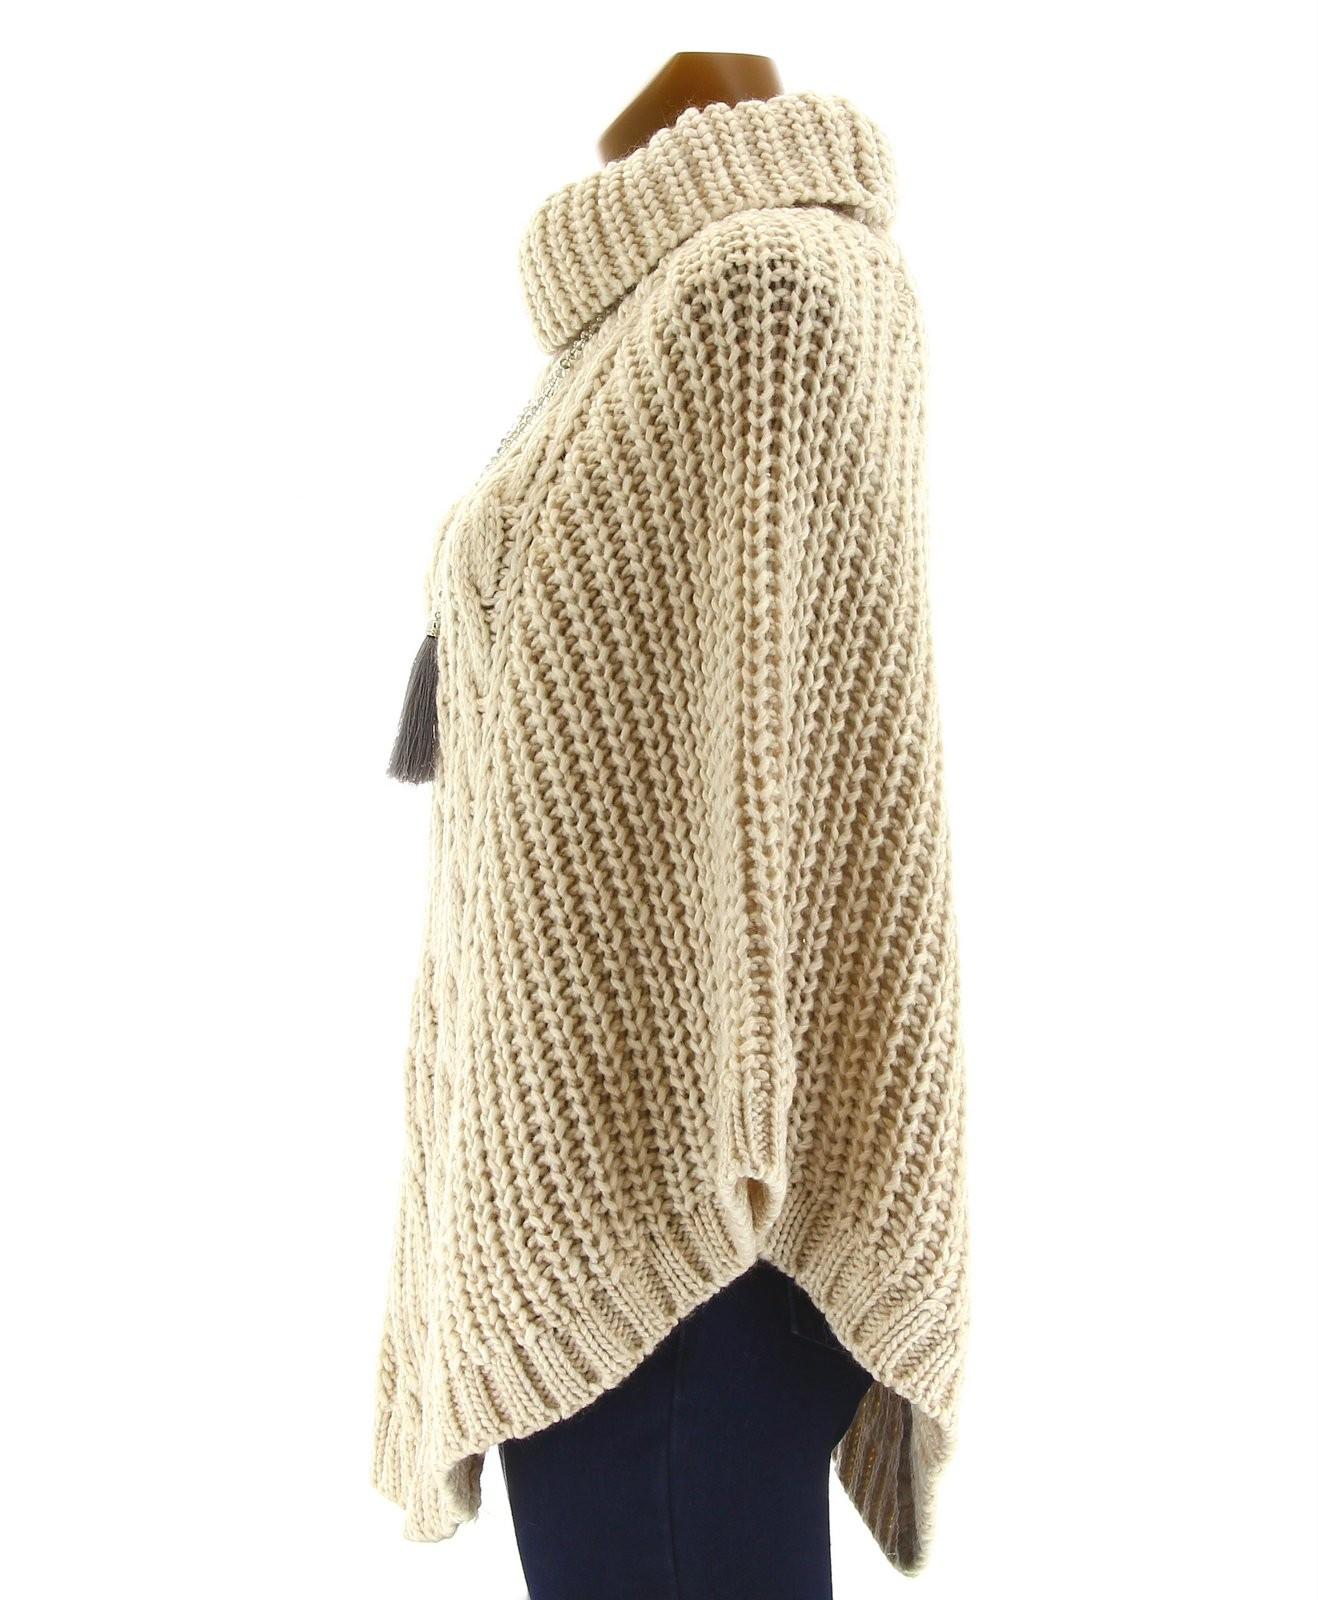 Poncho laine grosse maille laine mohair beige elodie - Laine grosse maille ...